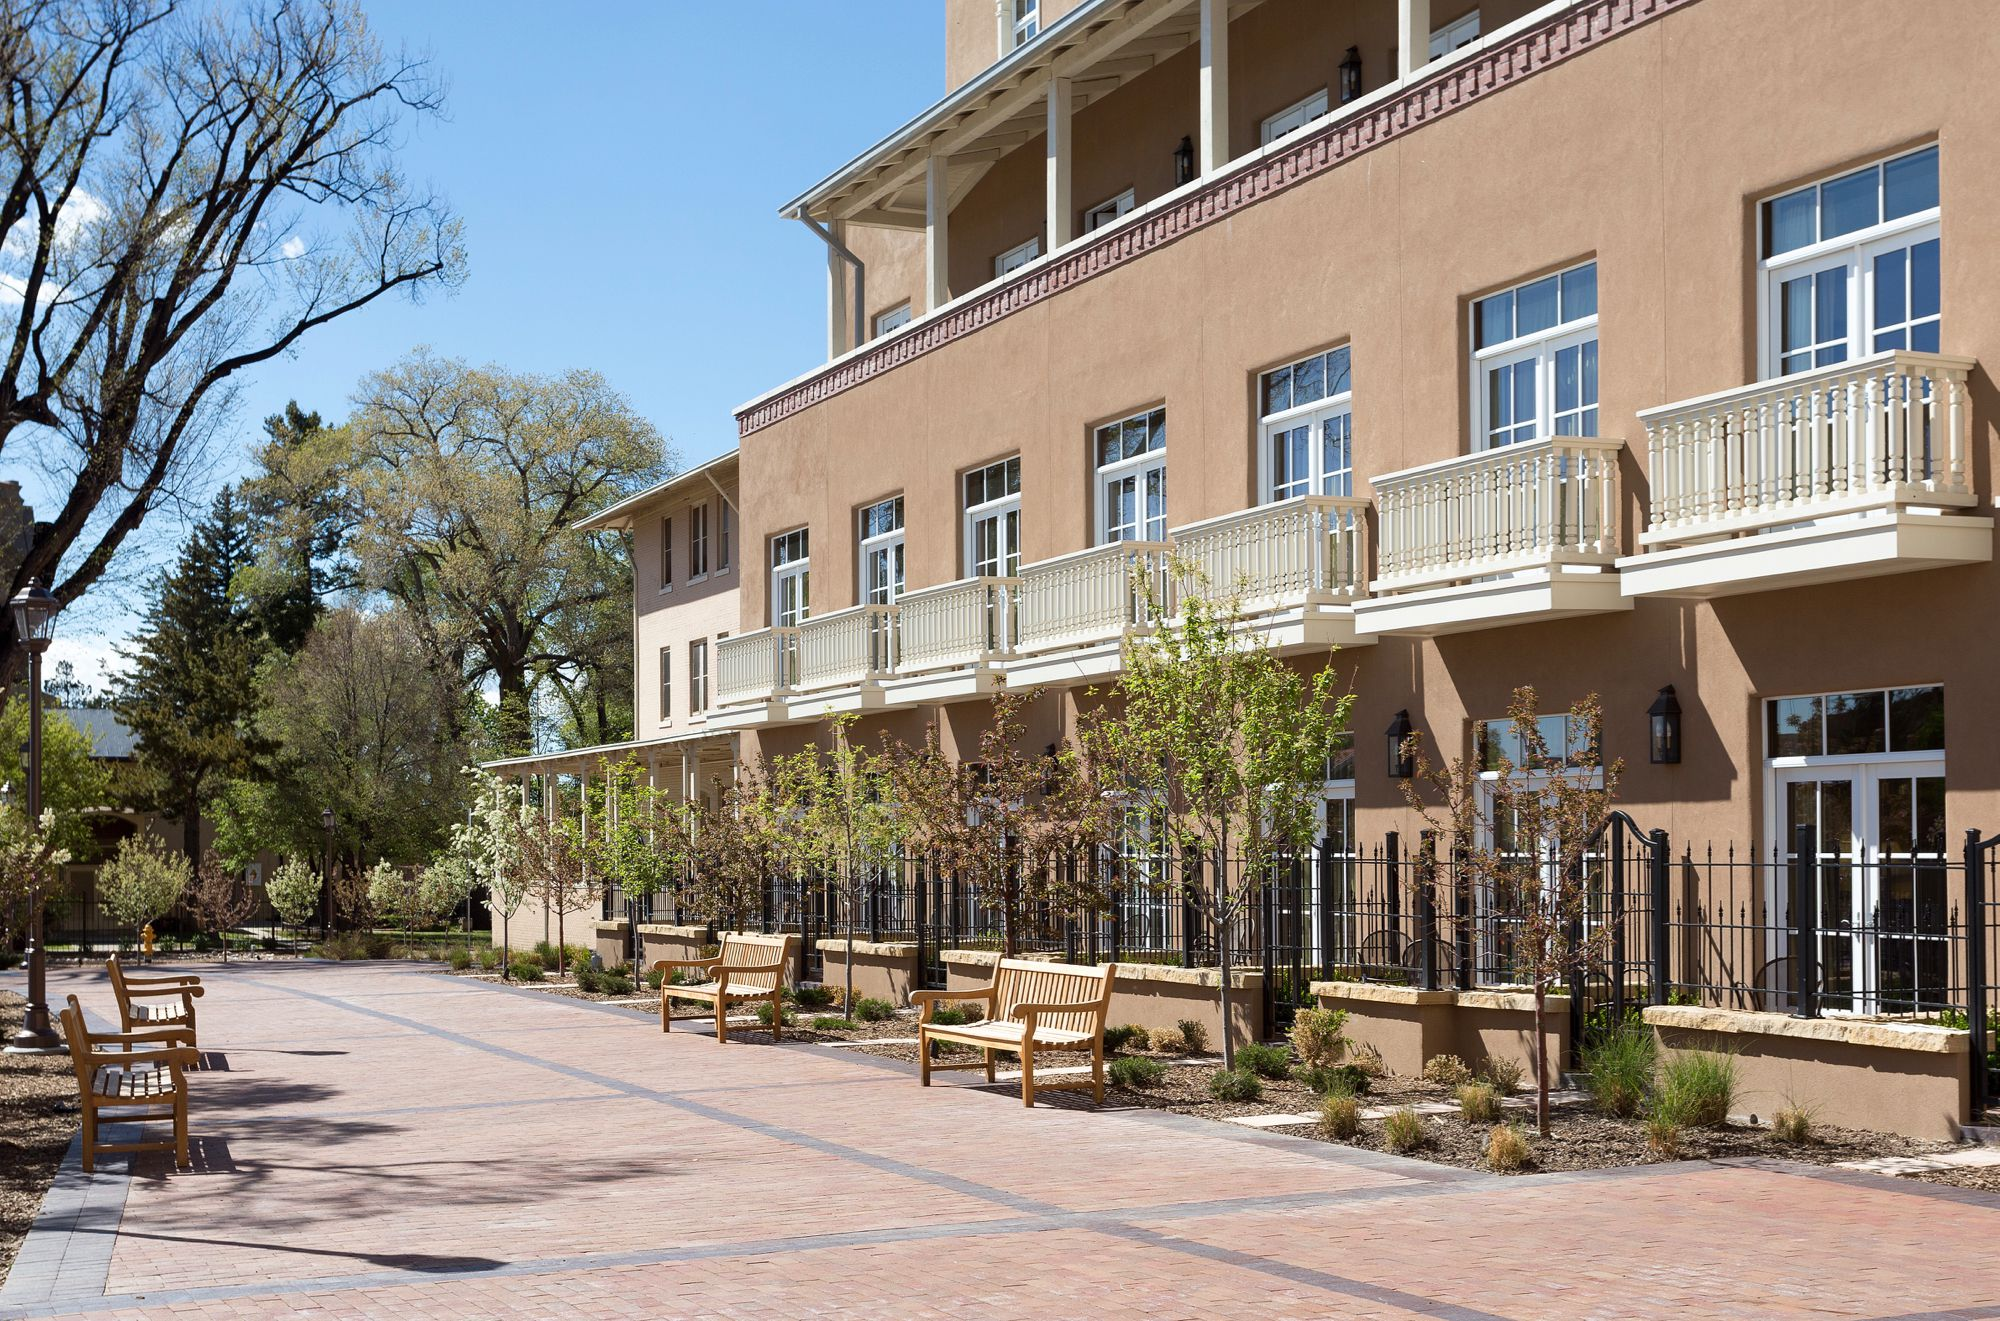 Drury Plaza Hotel Santa Fe Lux for Less Top Location